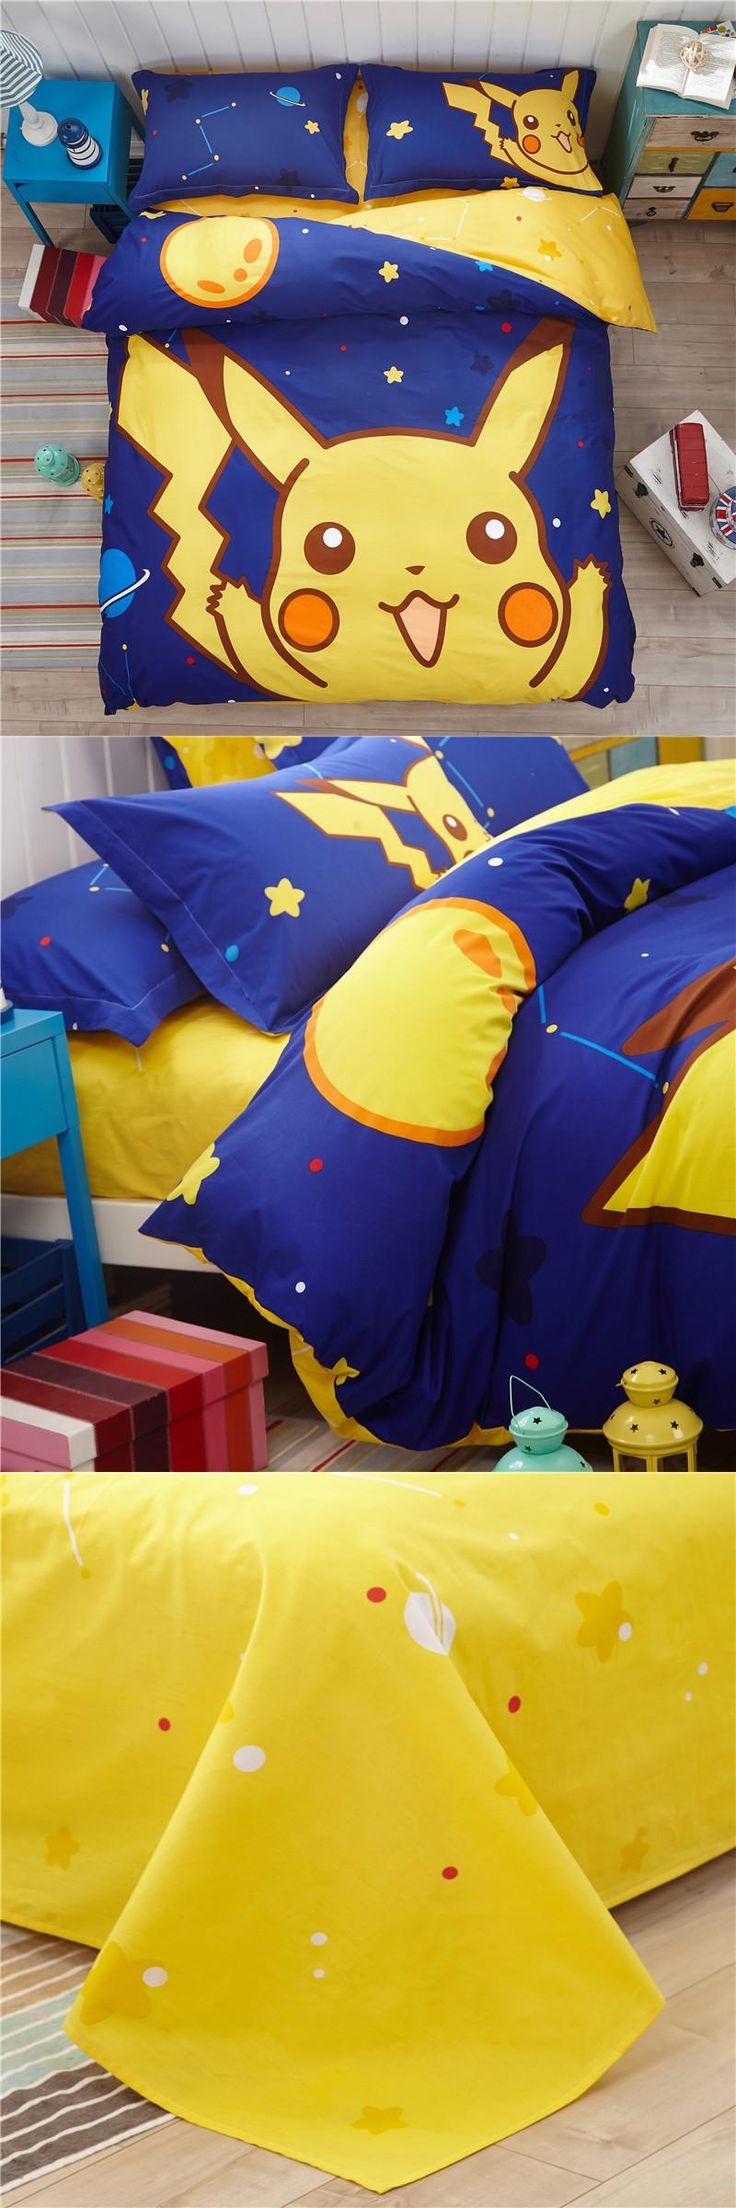 [Visit to Buy] Cartoon Pikachu Bedding Set Child Twin Full Queen Christmas Beddings Kids Cartoon Anime Pokemon Duvet Cover/Bed Sheet/Pillowcase #Advertisement